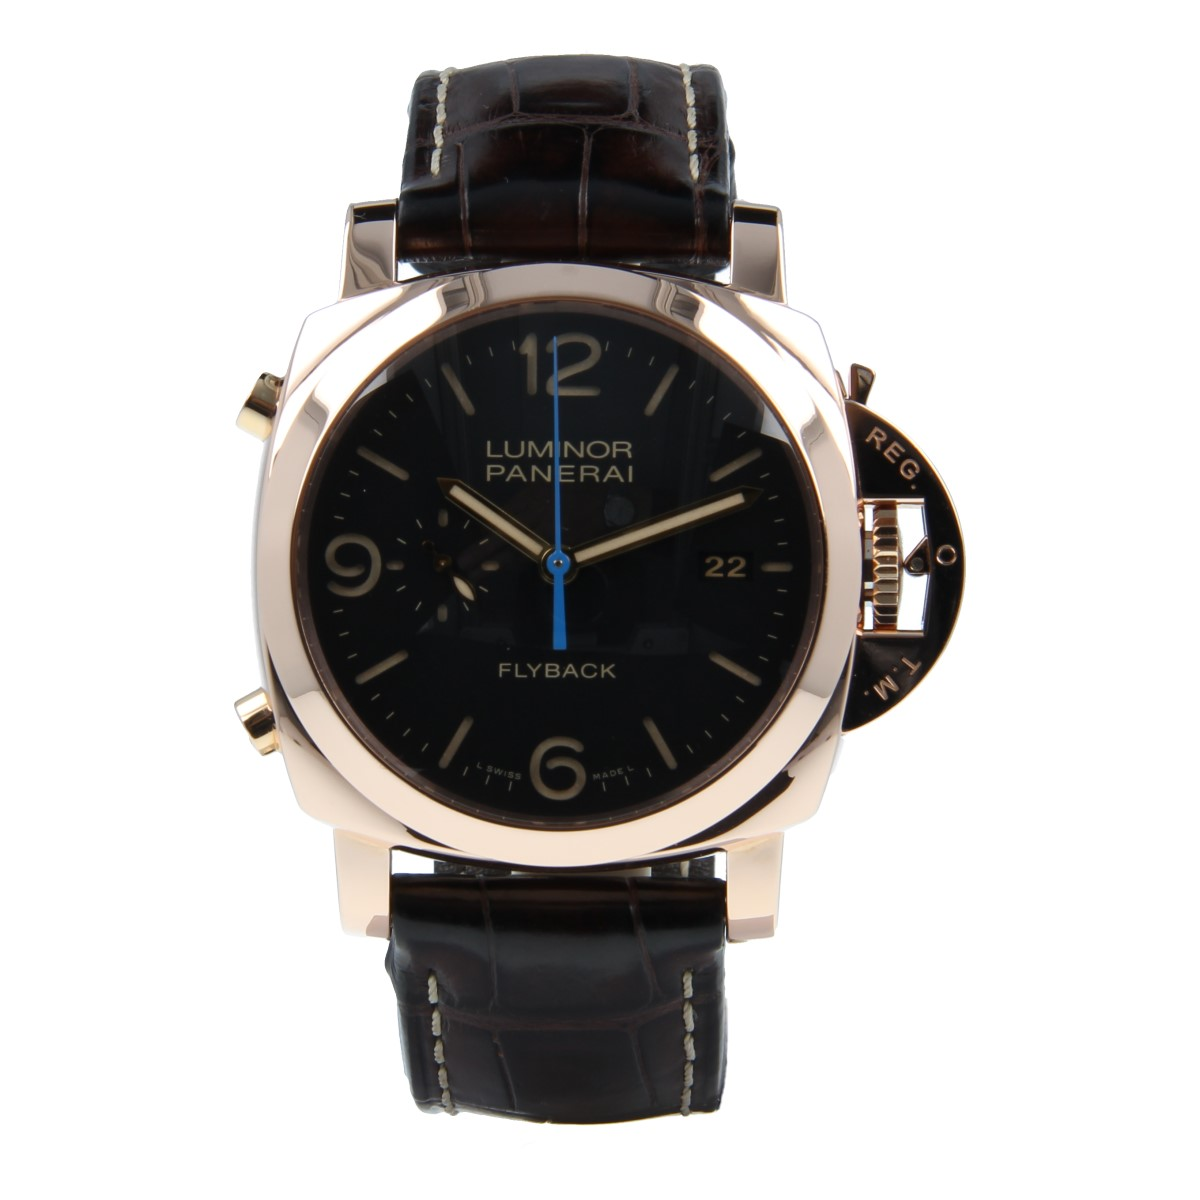 Panerai Luminor 1950 3 Days Chrono Flyback Automatic Oro Rosa 44mm | Comprar reloj Panerai segunda mano